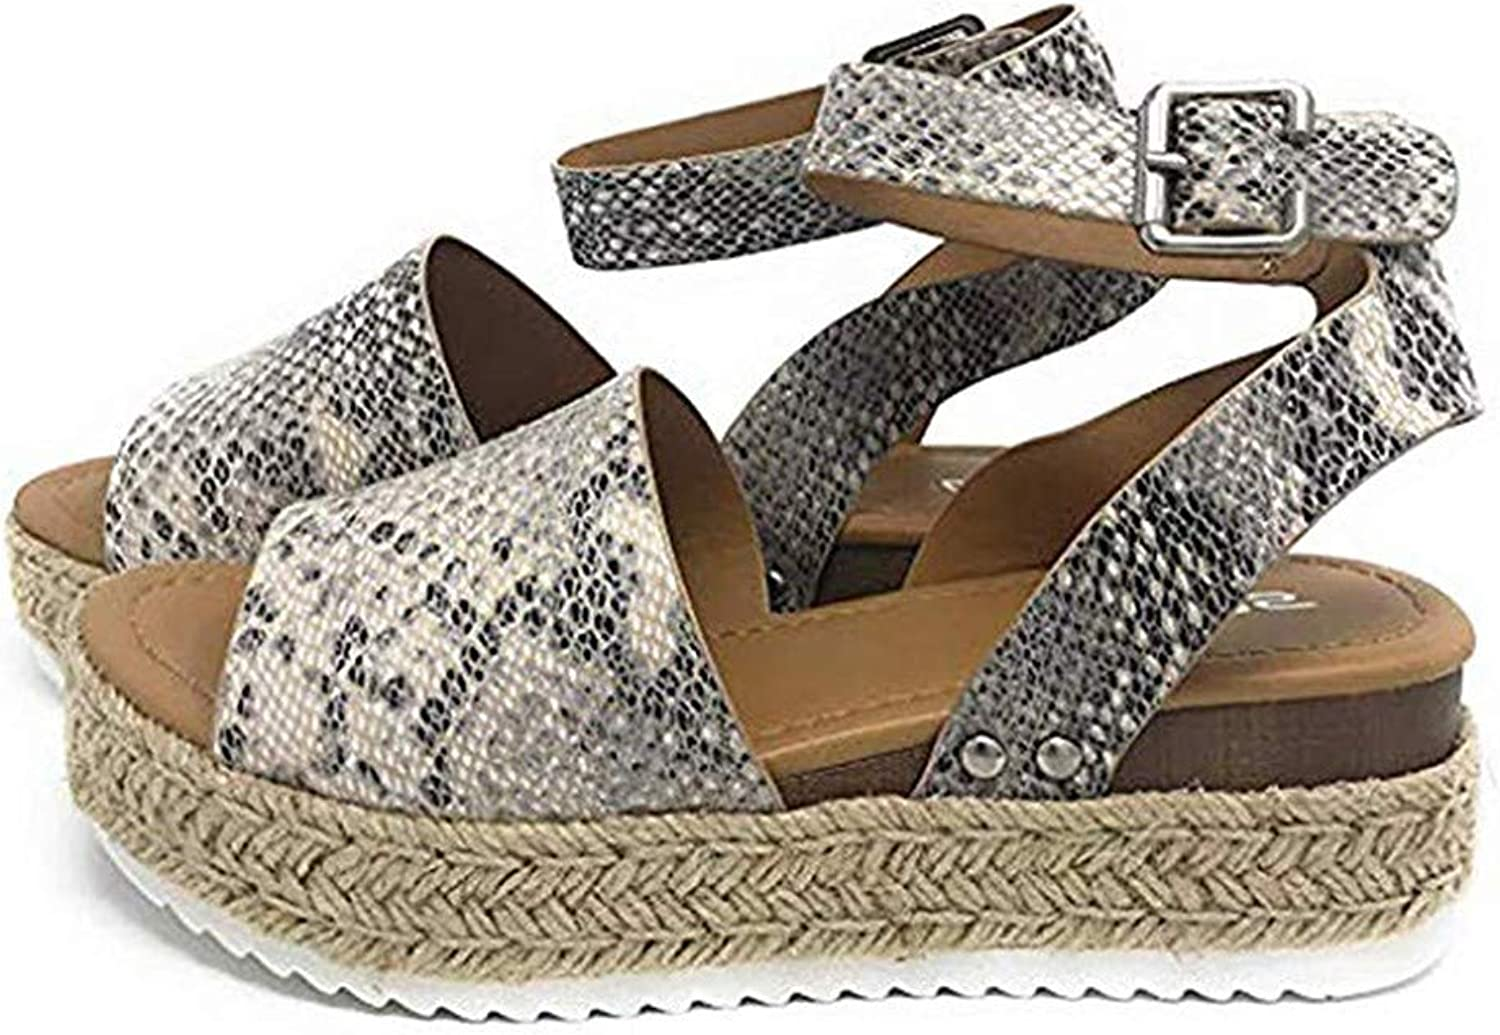 Retro Wedges Sandals Women Summer Peep Toe Buckle Ankle Strappy for Ladies Fashion Flat Lace Up Slingback Platform shoes Casual Comfy Espadrilles (Snake),Snake,38